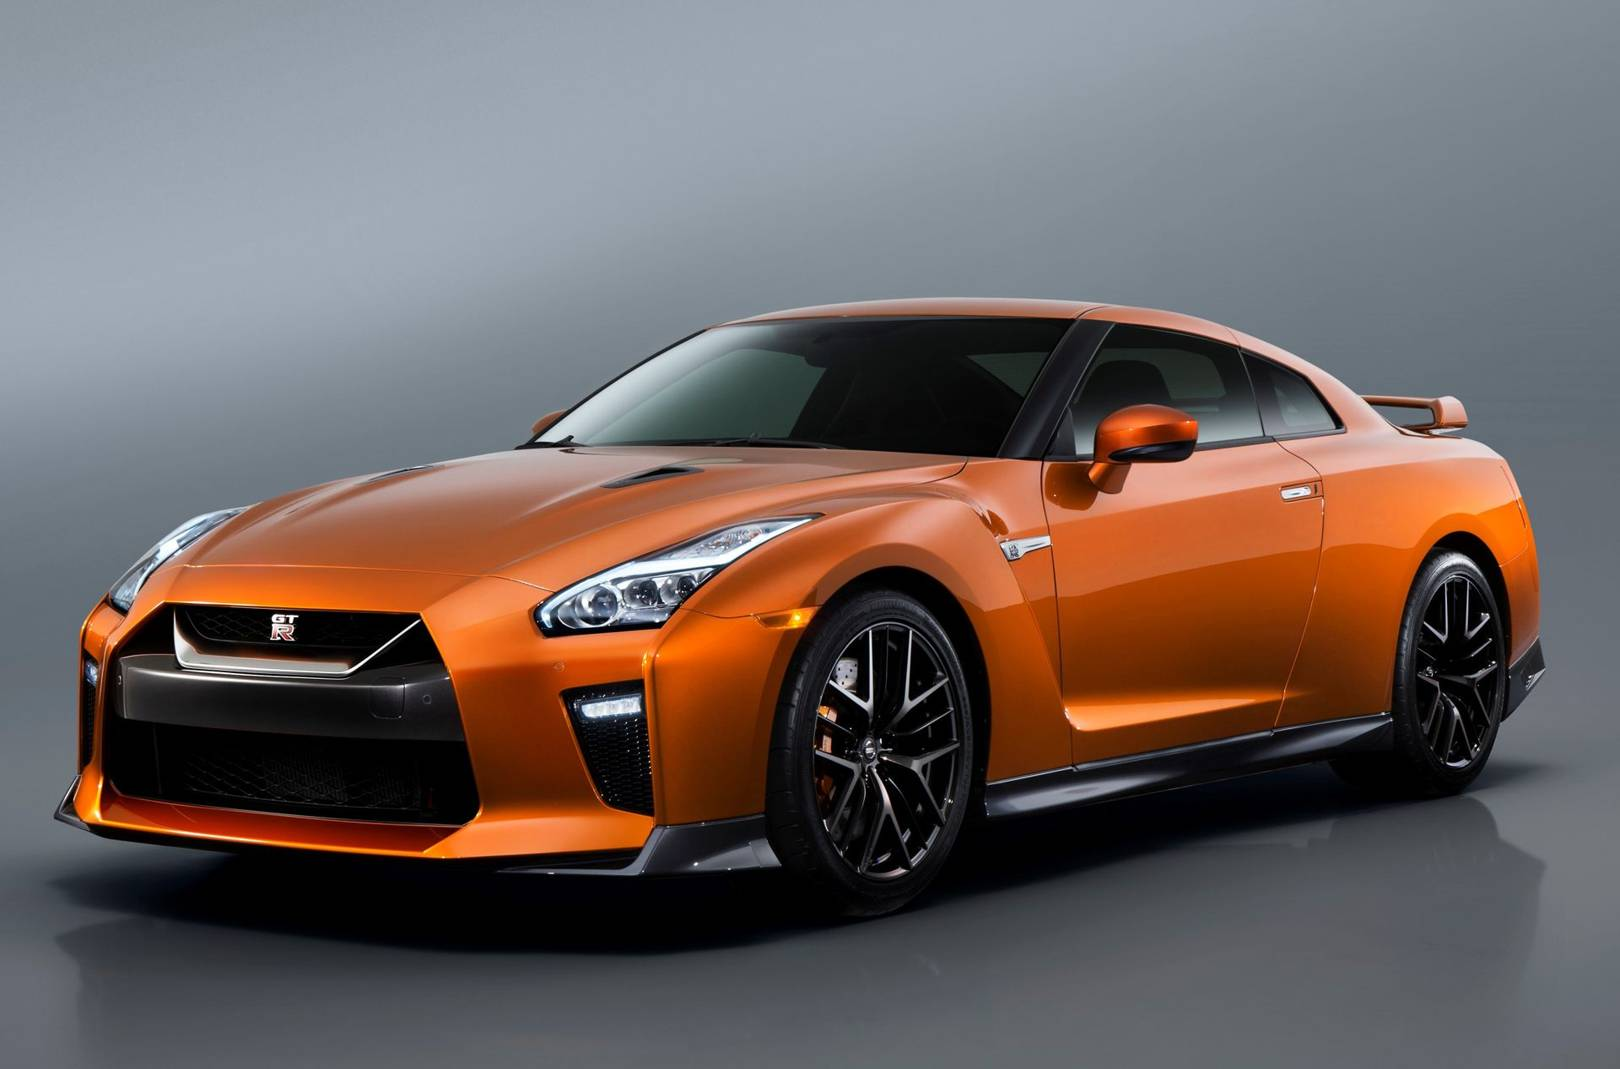 Nissan GTR Nissan Reveals New Flagship Sports Car British GQ - Sports car gt